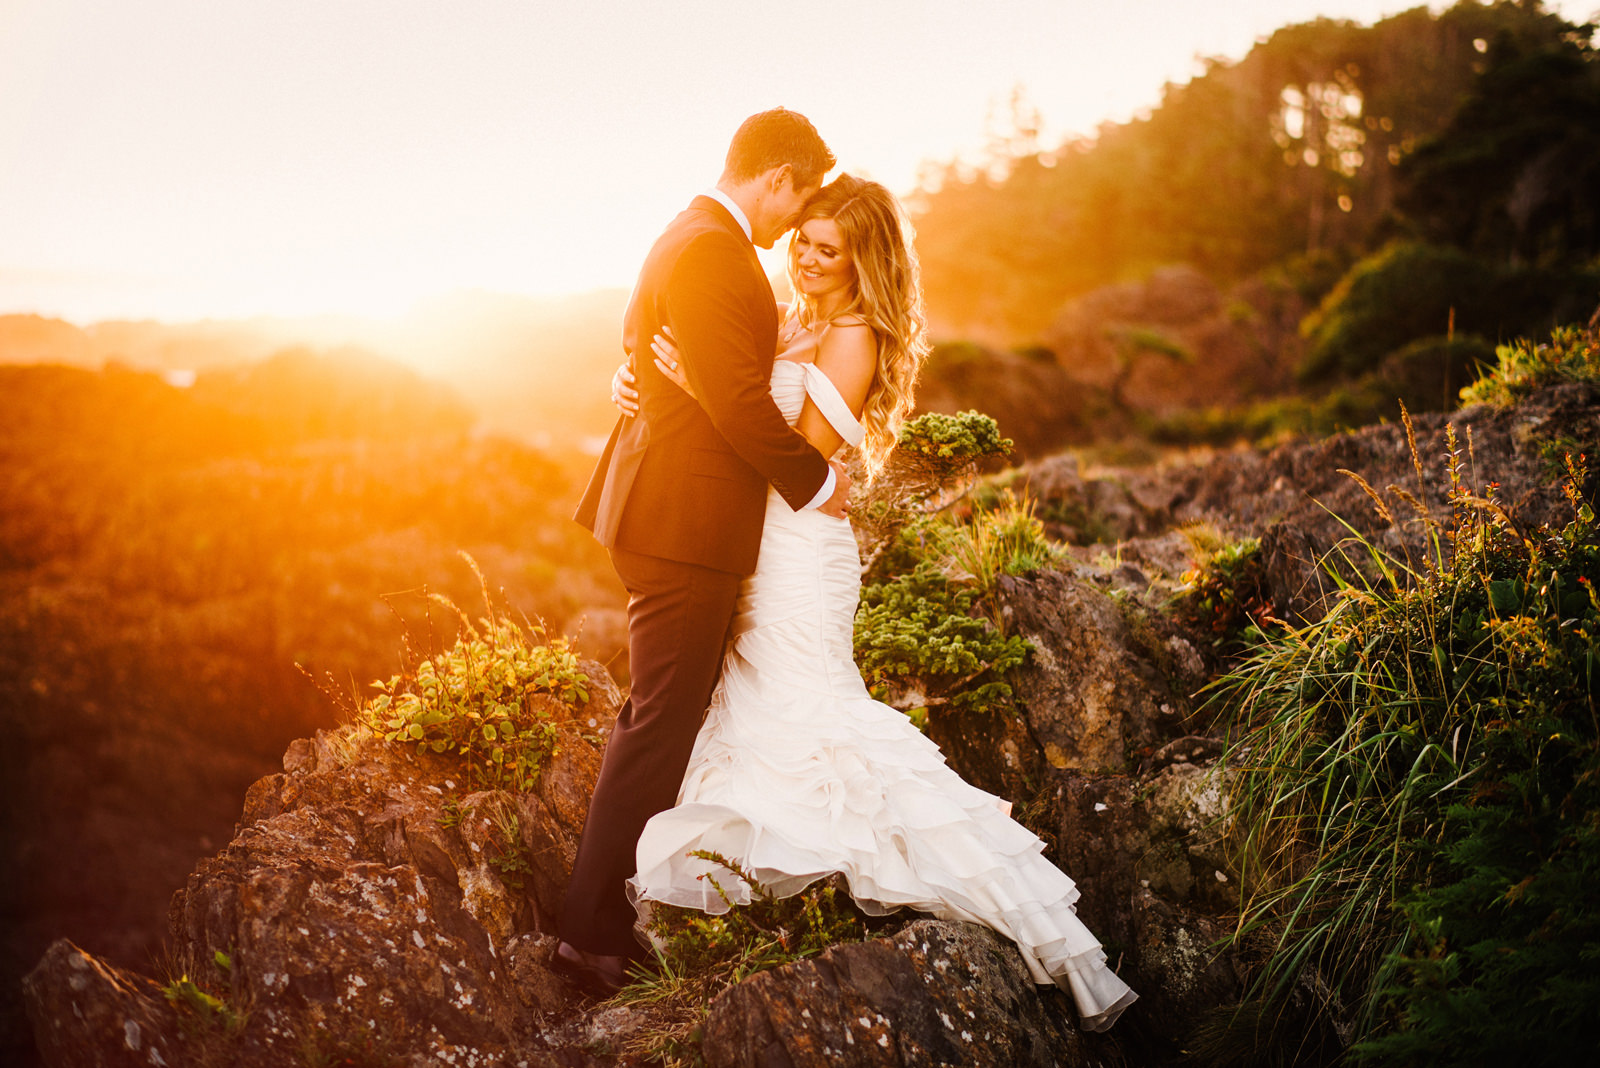 002-blackrock-resort-in-ucluelet--bc-wedding-by-ryan-flynn-photography.jpg